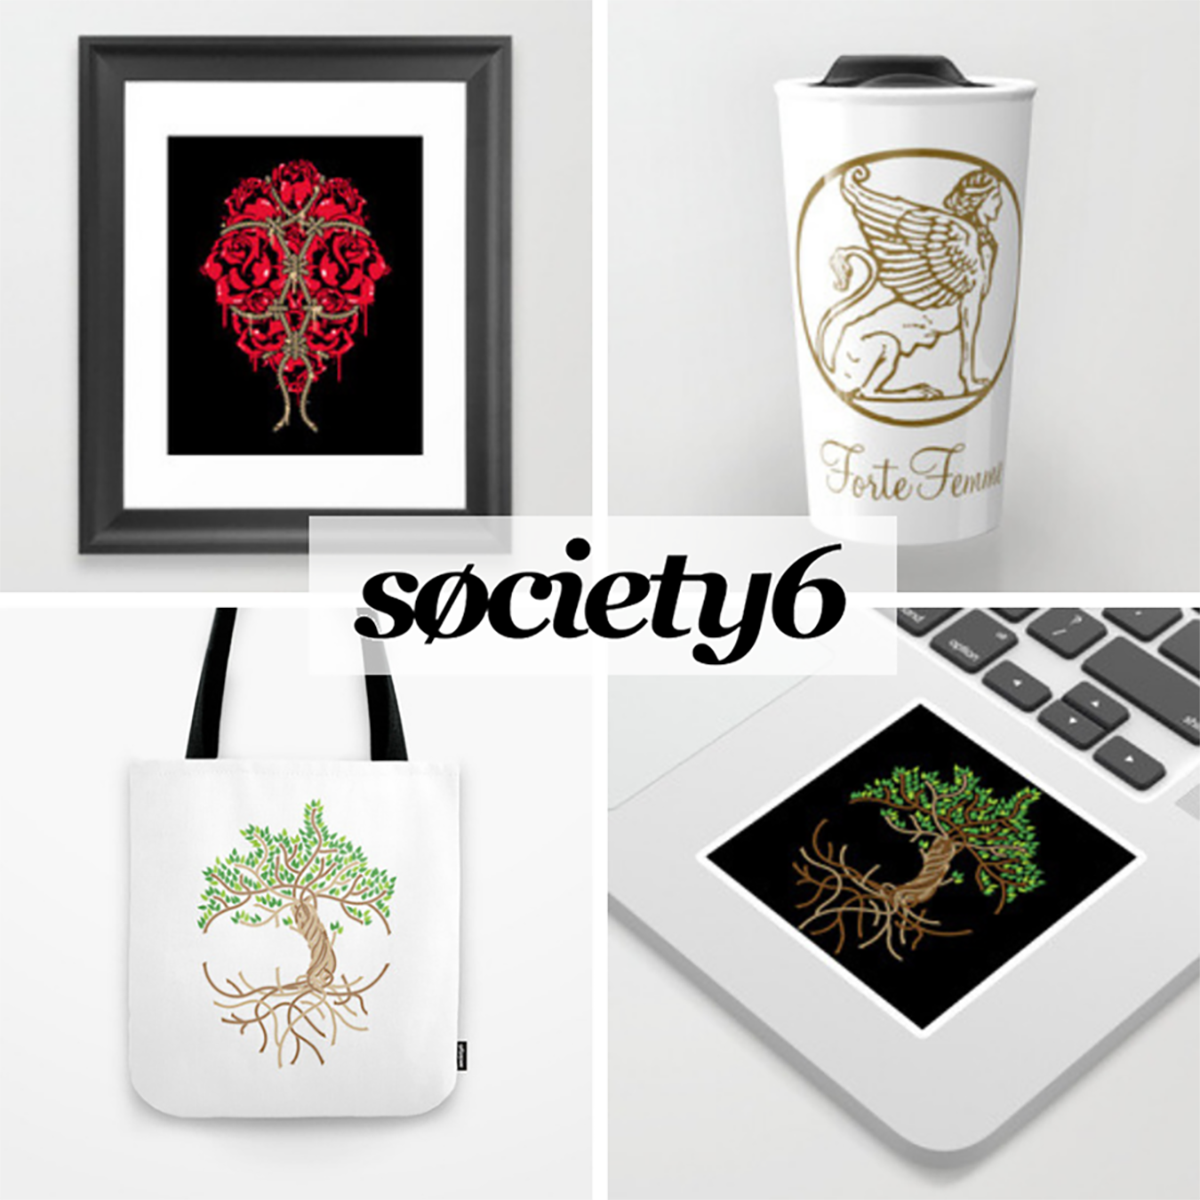 Society 6 Products 2018 1200